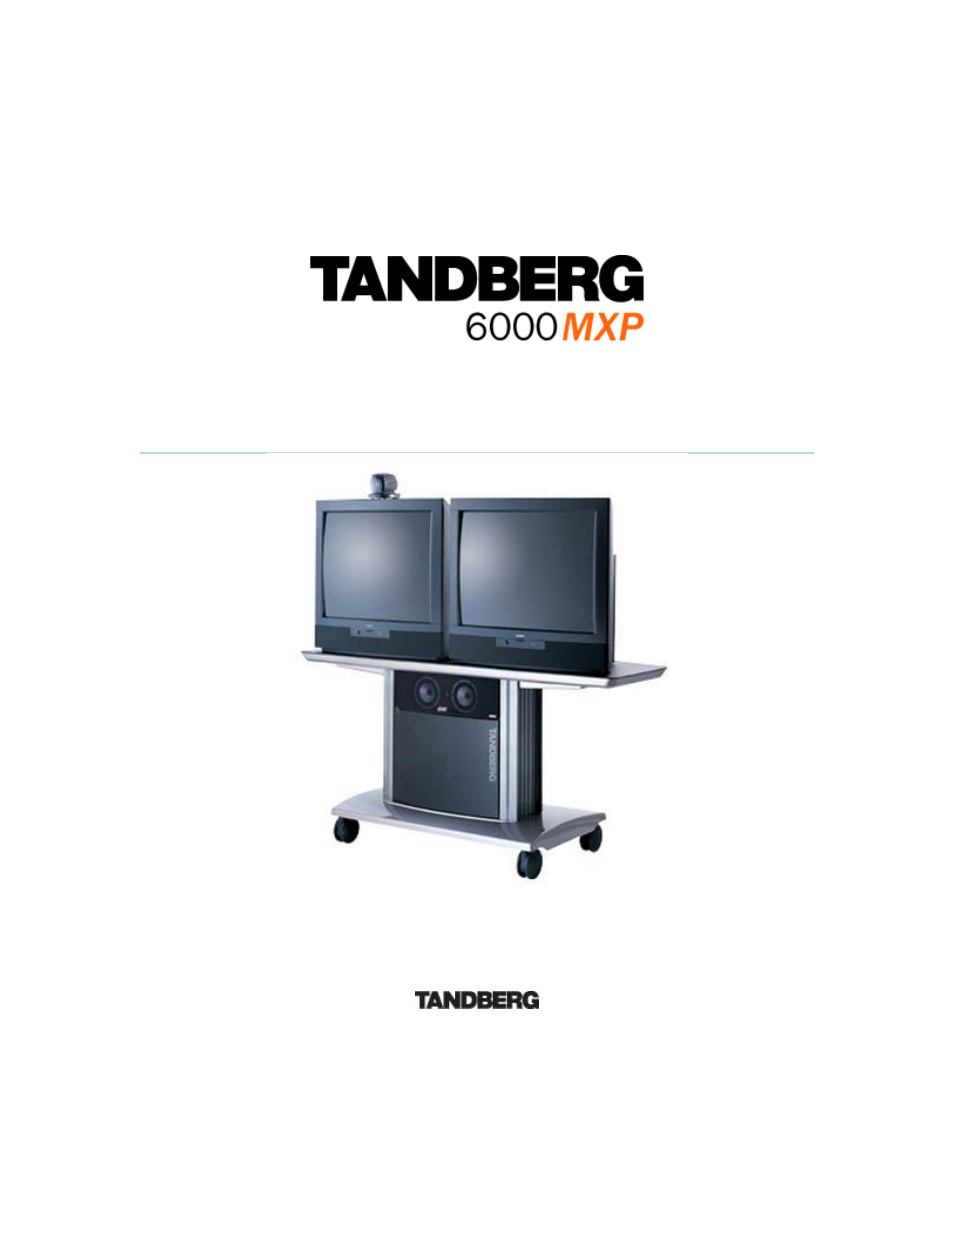 Videoconferencing tandberg profile 6000 mxp user manual.